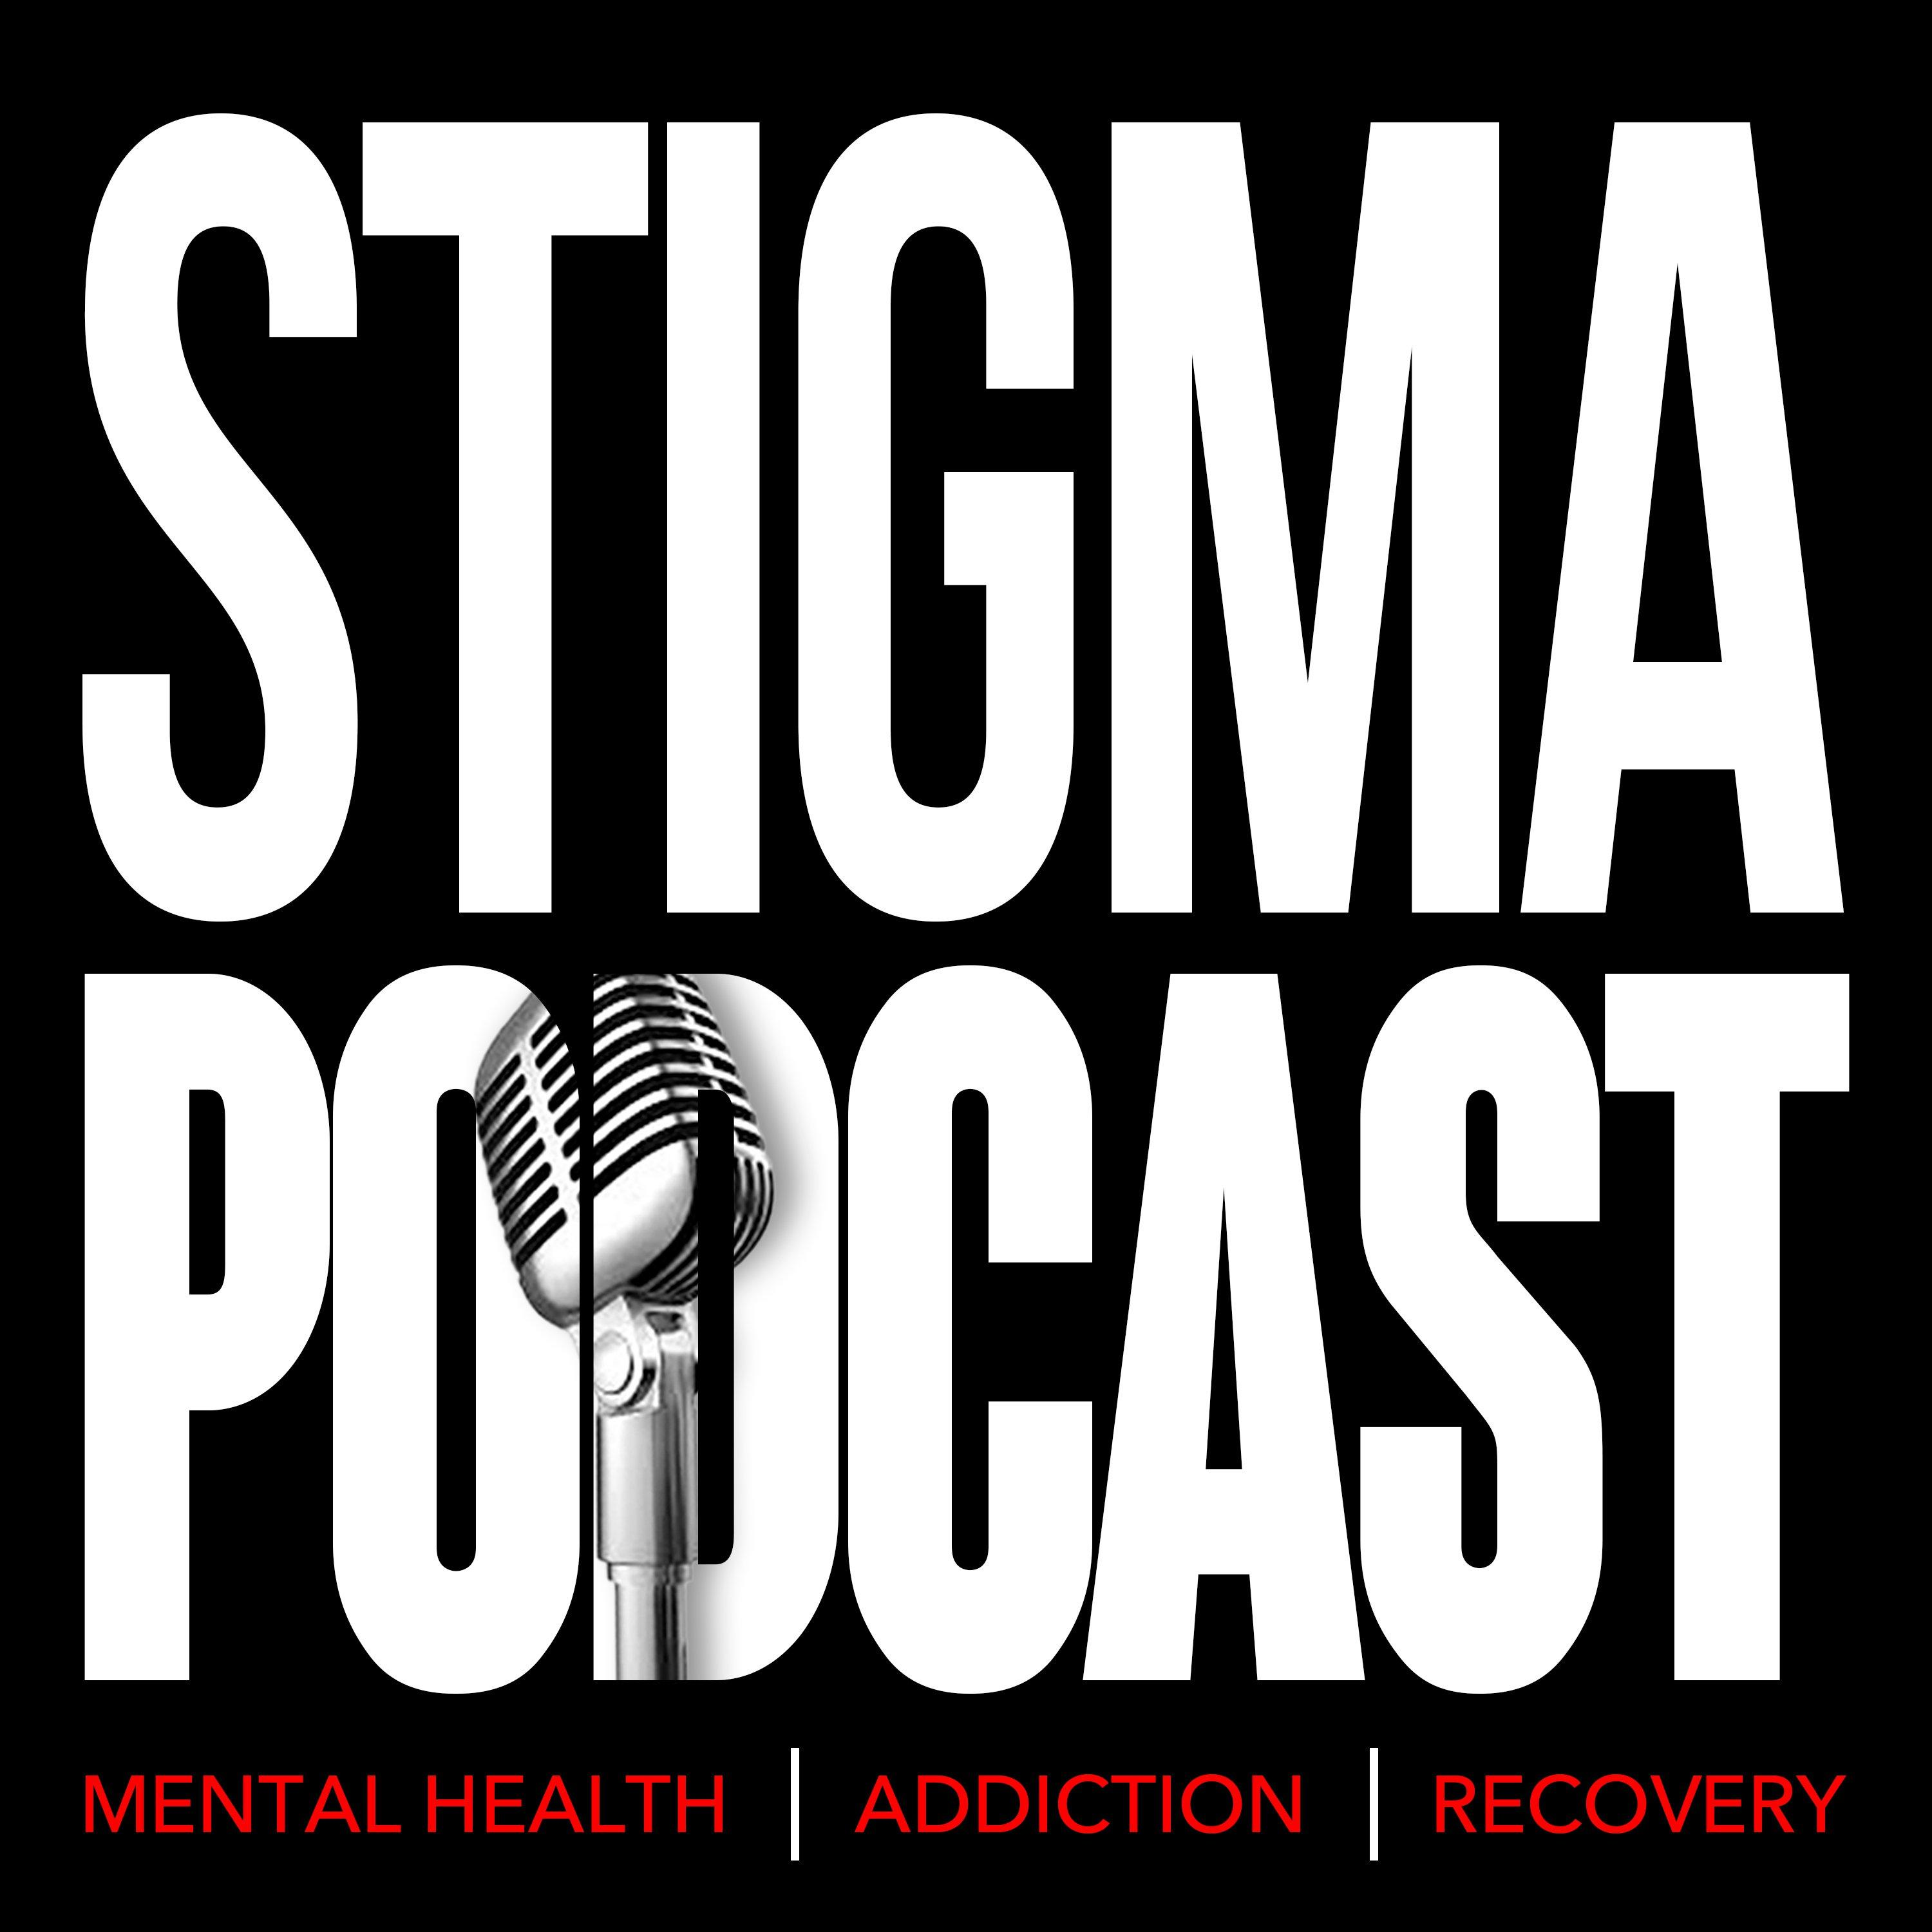 Stigma Podcast - Mental Health - #26 - What is the Role of the Church in Mental Health - with Michael Perron of Prestonwood Baptist Church